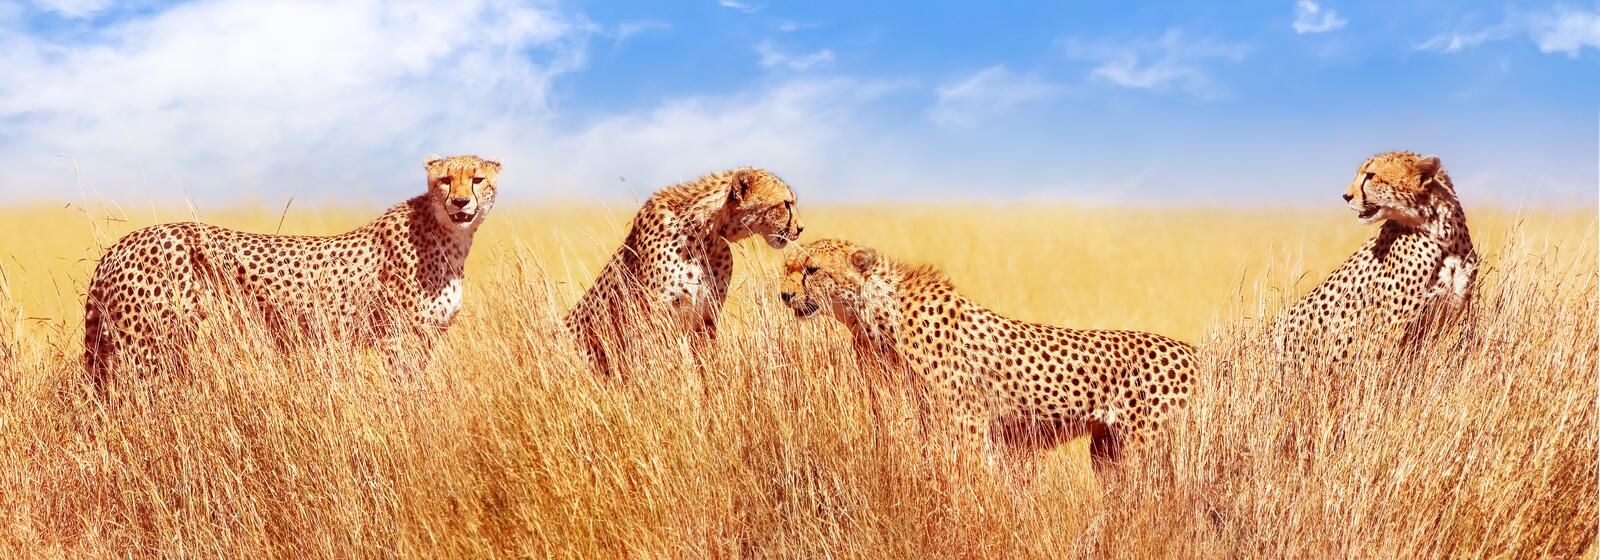 Group of cheetahs in the African savannah. Africa, Tanzania, Serengeti National Park. Banner design. Wild life of Africa. Group of cheetahs in the African royalty free stock photos